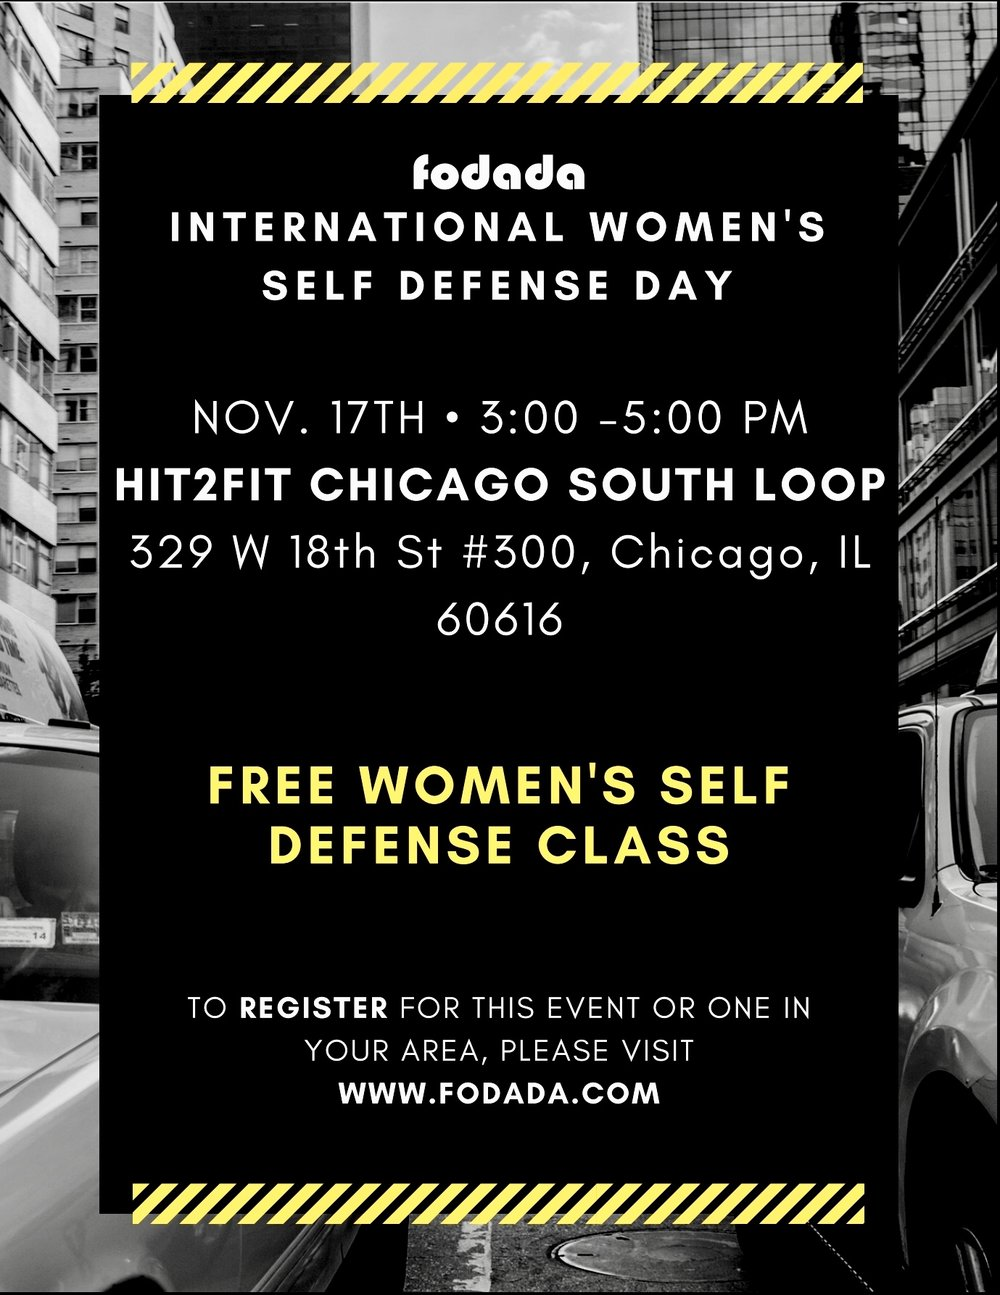 CELEBRATE INTERNATIONAL WOMEN'SSELF-DEFENSE DAY - This year, Hit2Fit Chicago South Loop has partnered with Fodada to help empower women around the globe and our community 🌎We will be hosting a FREE ALL WOMEN self-defense on November 17th 2018. Don't miss out on the opportunity to learn hand-to-hand combat skills, self-awareness, multiple attacks, and much more. Learn to protect yourself and those you love!To register for your FREE seminar go to www.fodada.com or click below